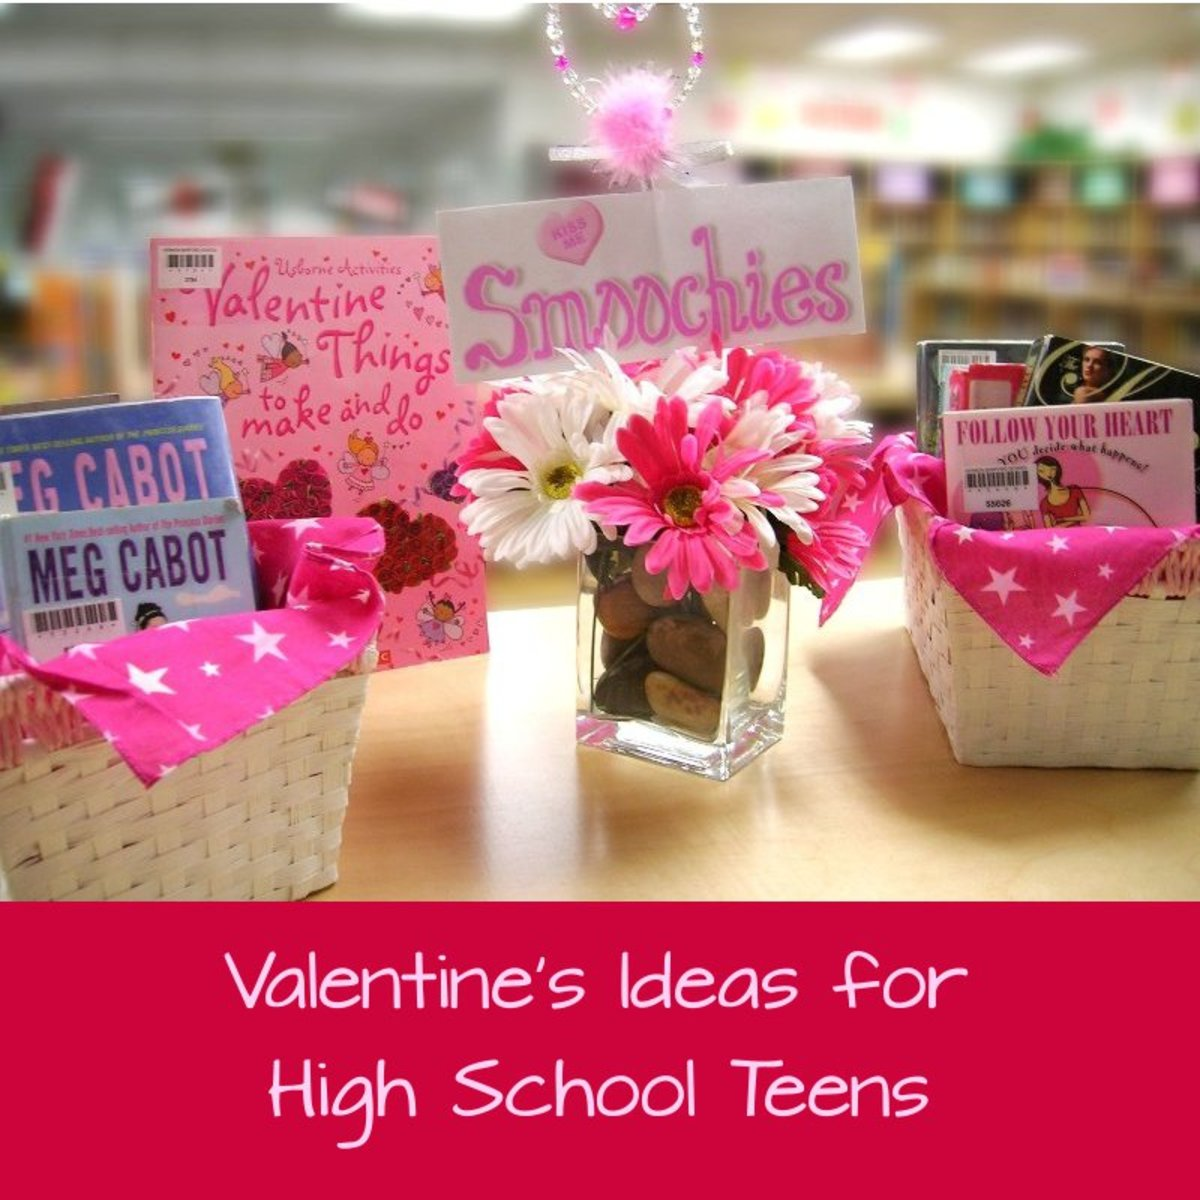 Looking for some great ideas for how to celebrate Valentine's Day at high school this year? You should prepare for a romantic date with your sweetheart! Make it memorable with some of these ideas.